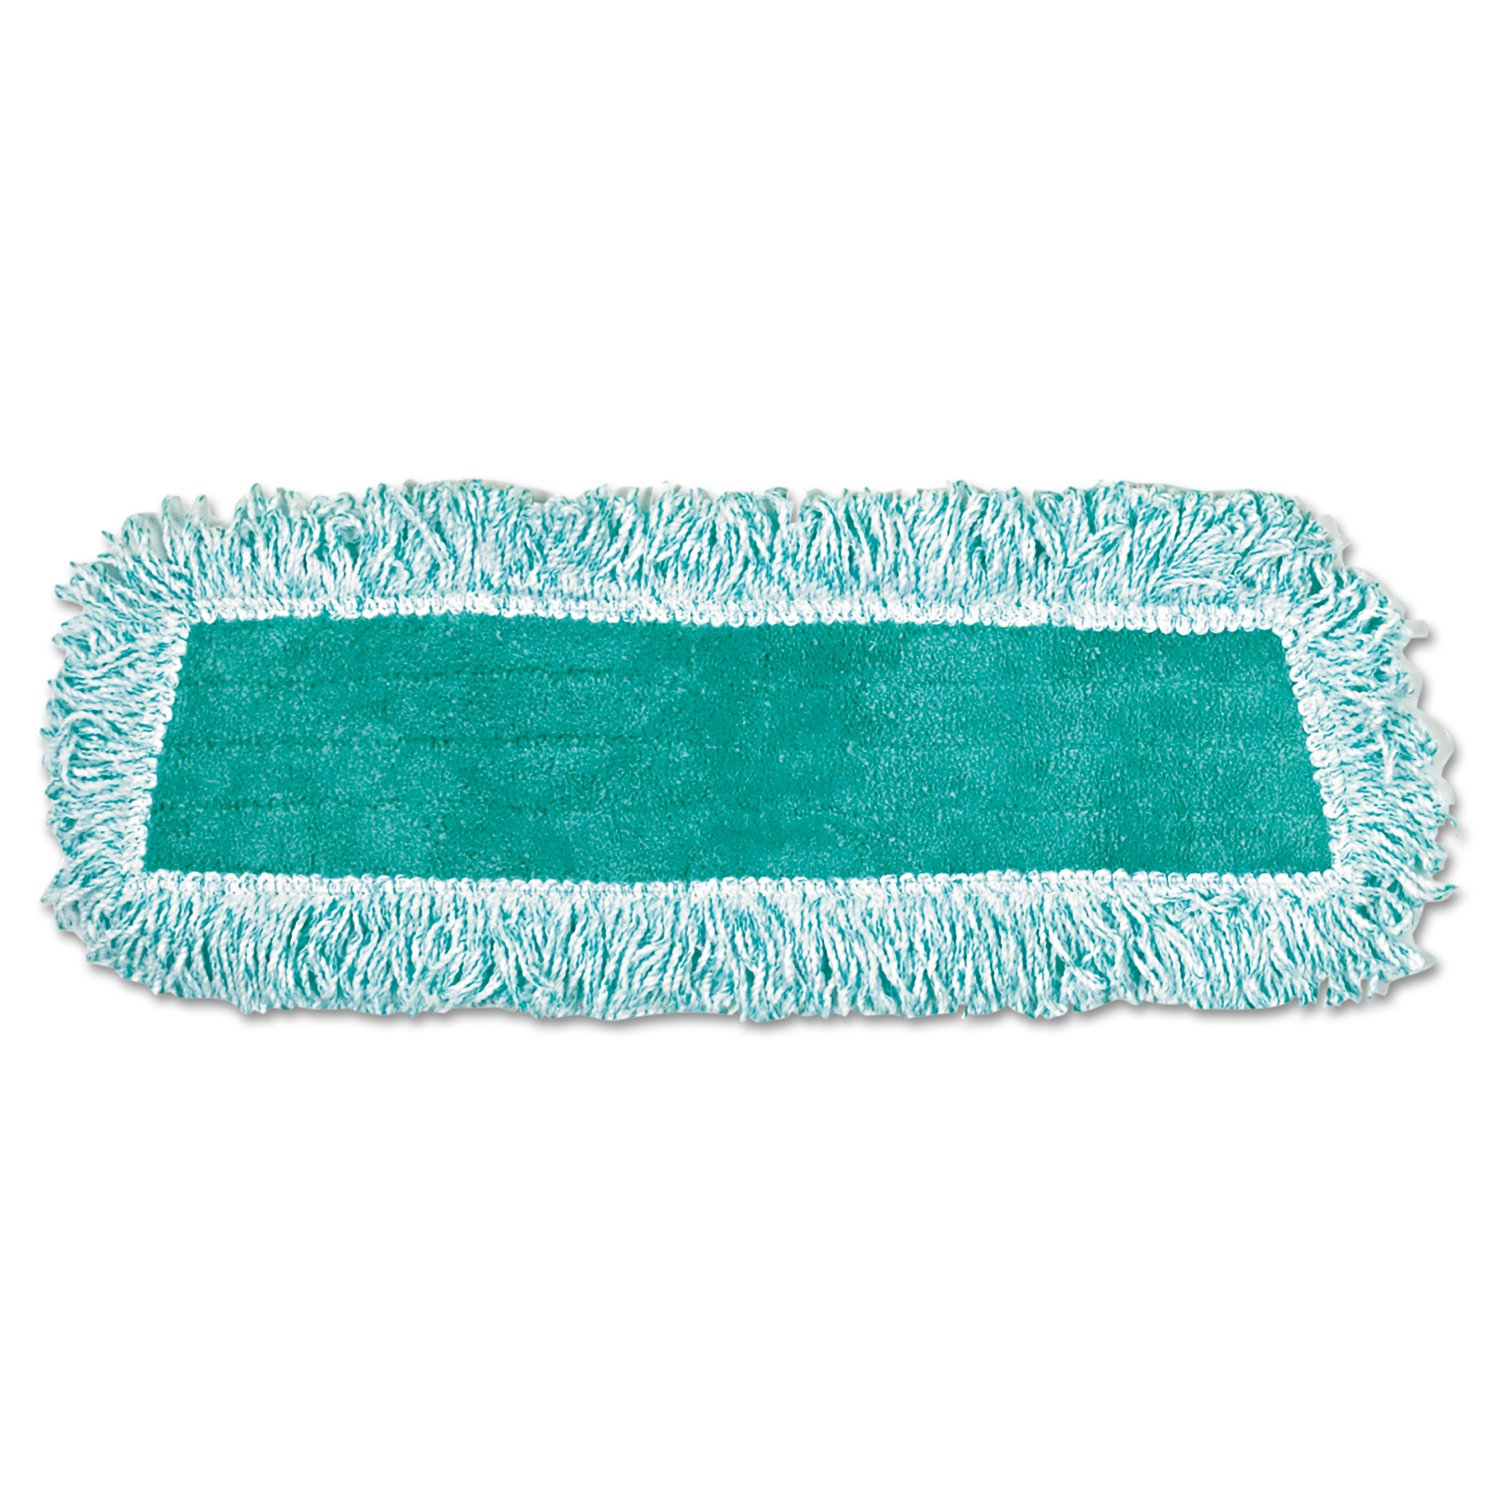 Rubbermaid Commercial RCP Q408 GRE Standard Microfiber Dust Mop with Fringe, Cut-End, 18'' x 5'' (Pack of 12) by Rubbermaid Commercial (Image #1)